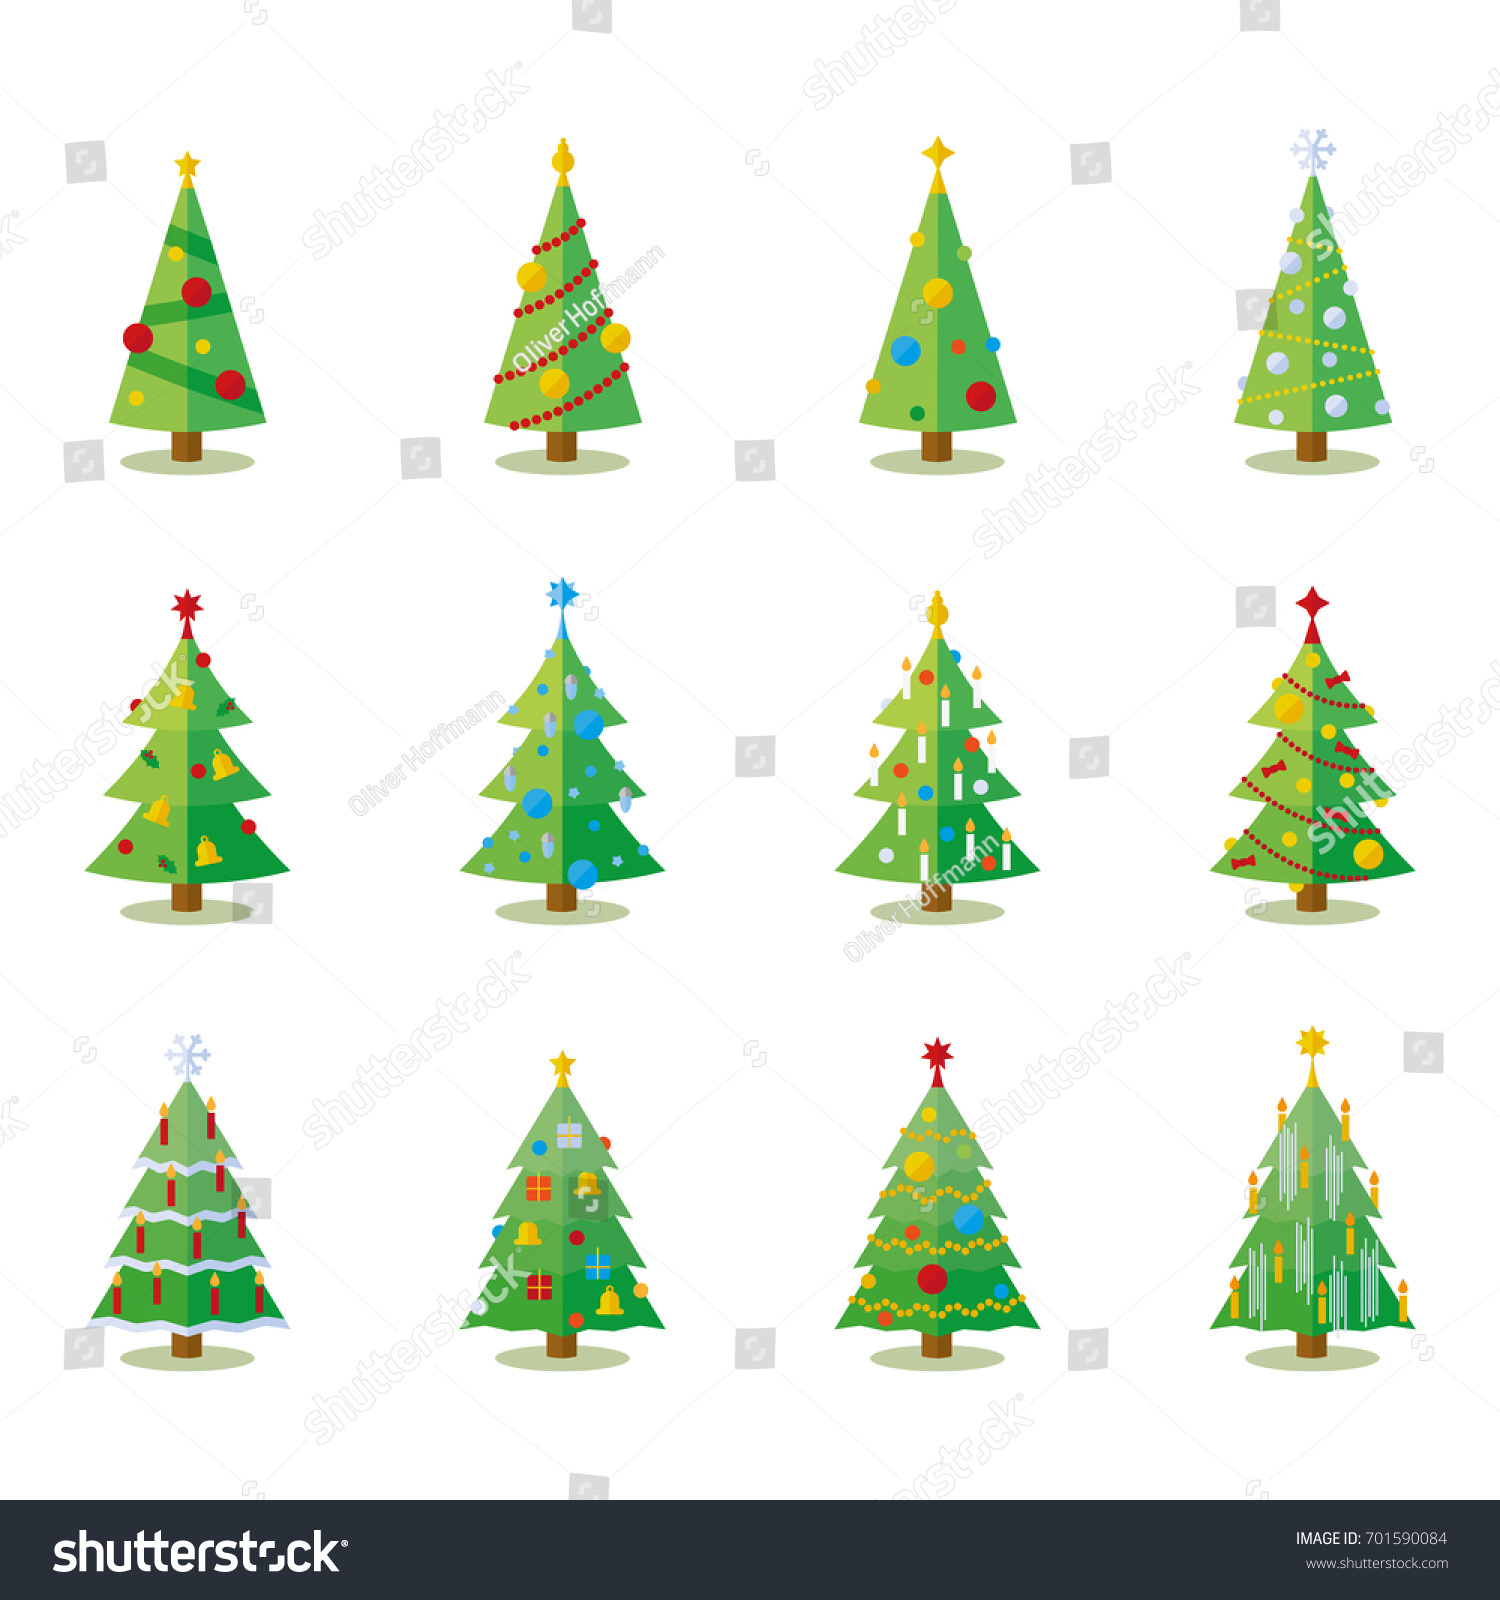 Christmas Tree Flat Design Collection Set Stock Vector